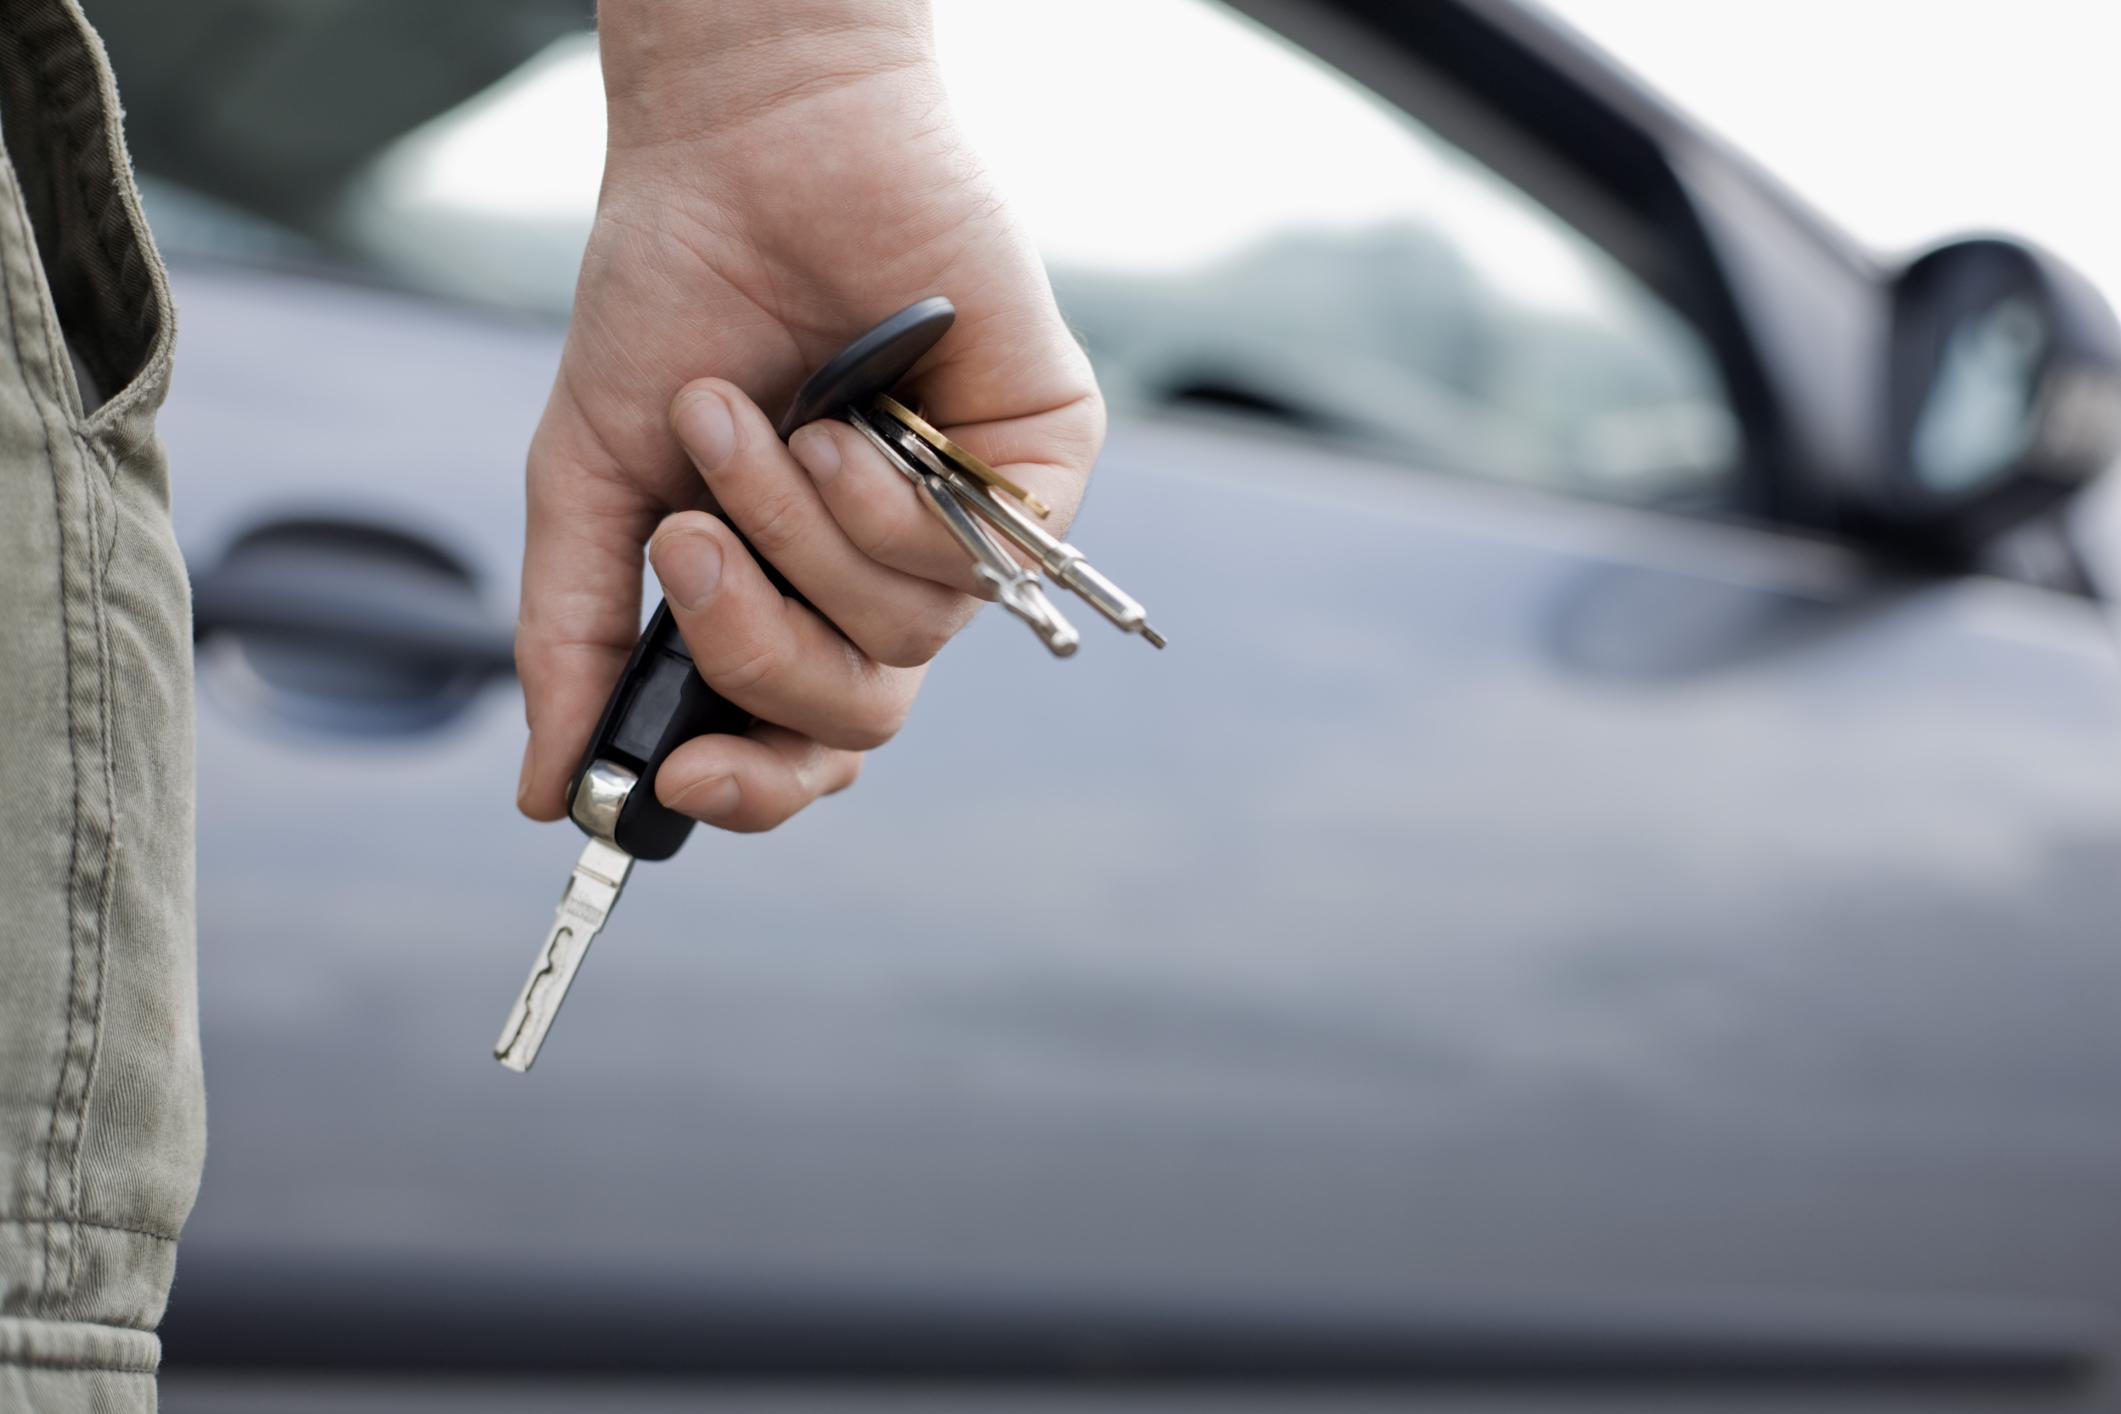 Warning over car thefts as they are taken without key